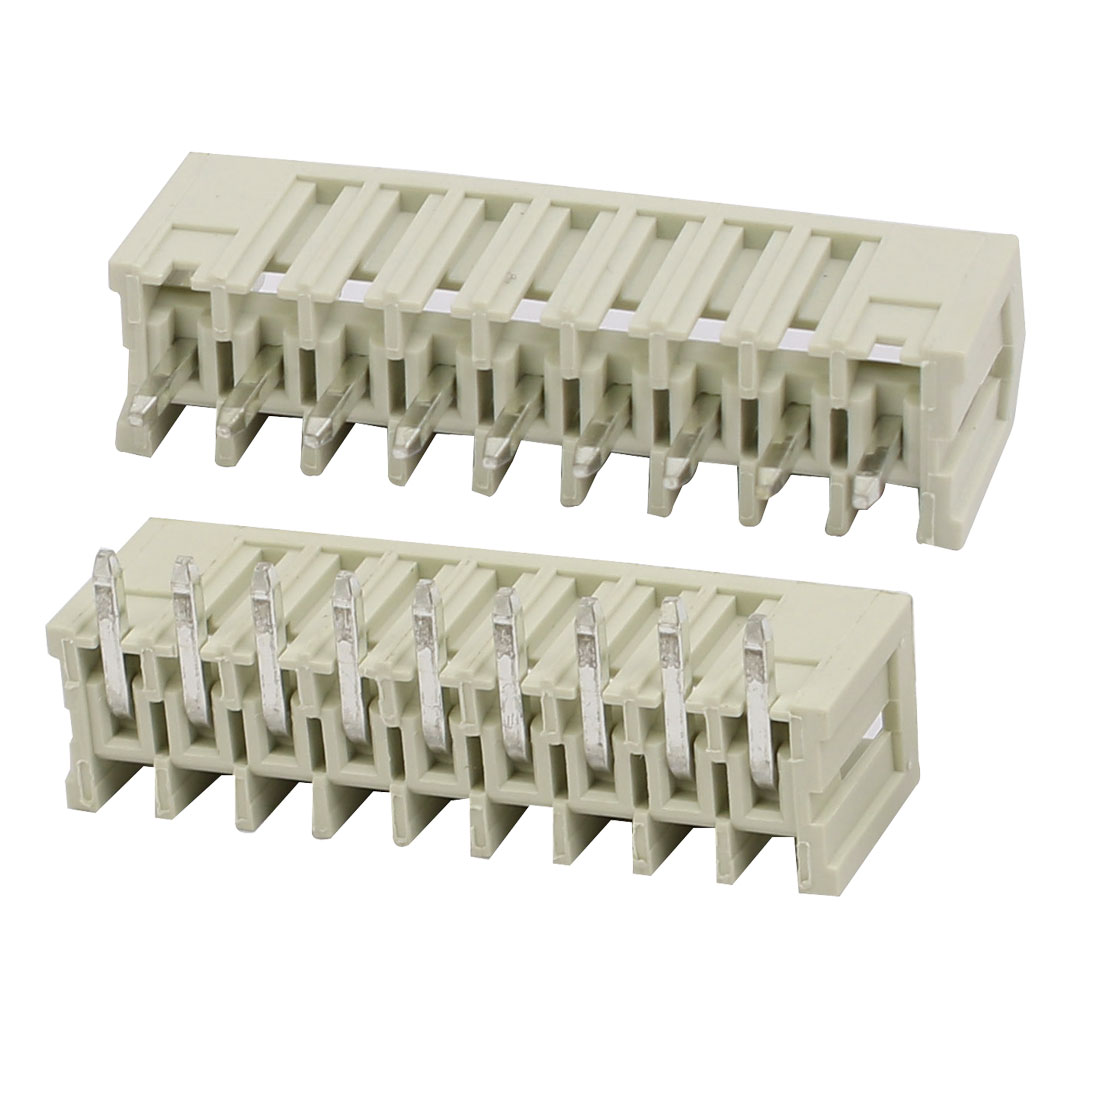 9 Pole PCB 3.5 Pitch 250V 10A Box Header MCS Connectors Pair